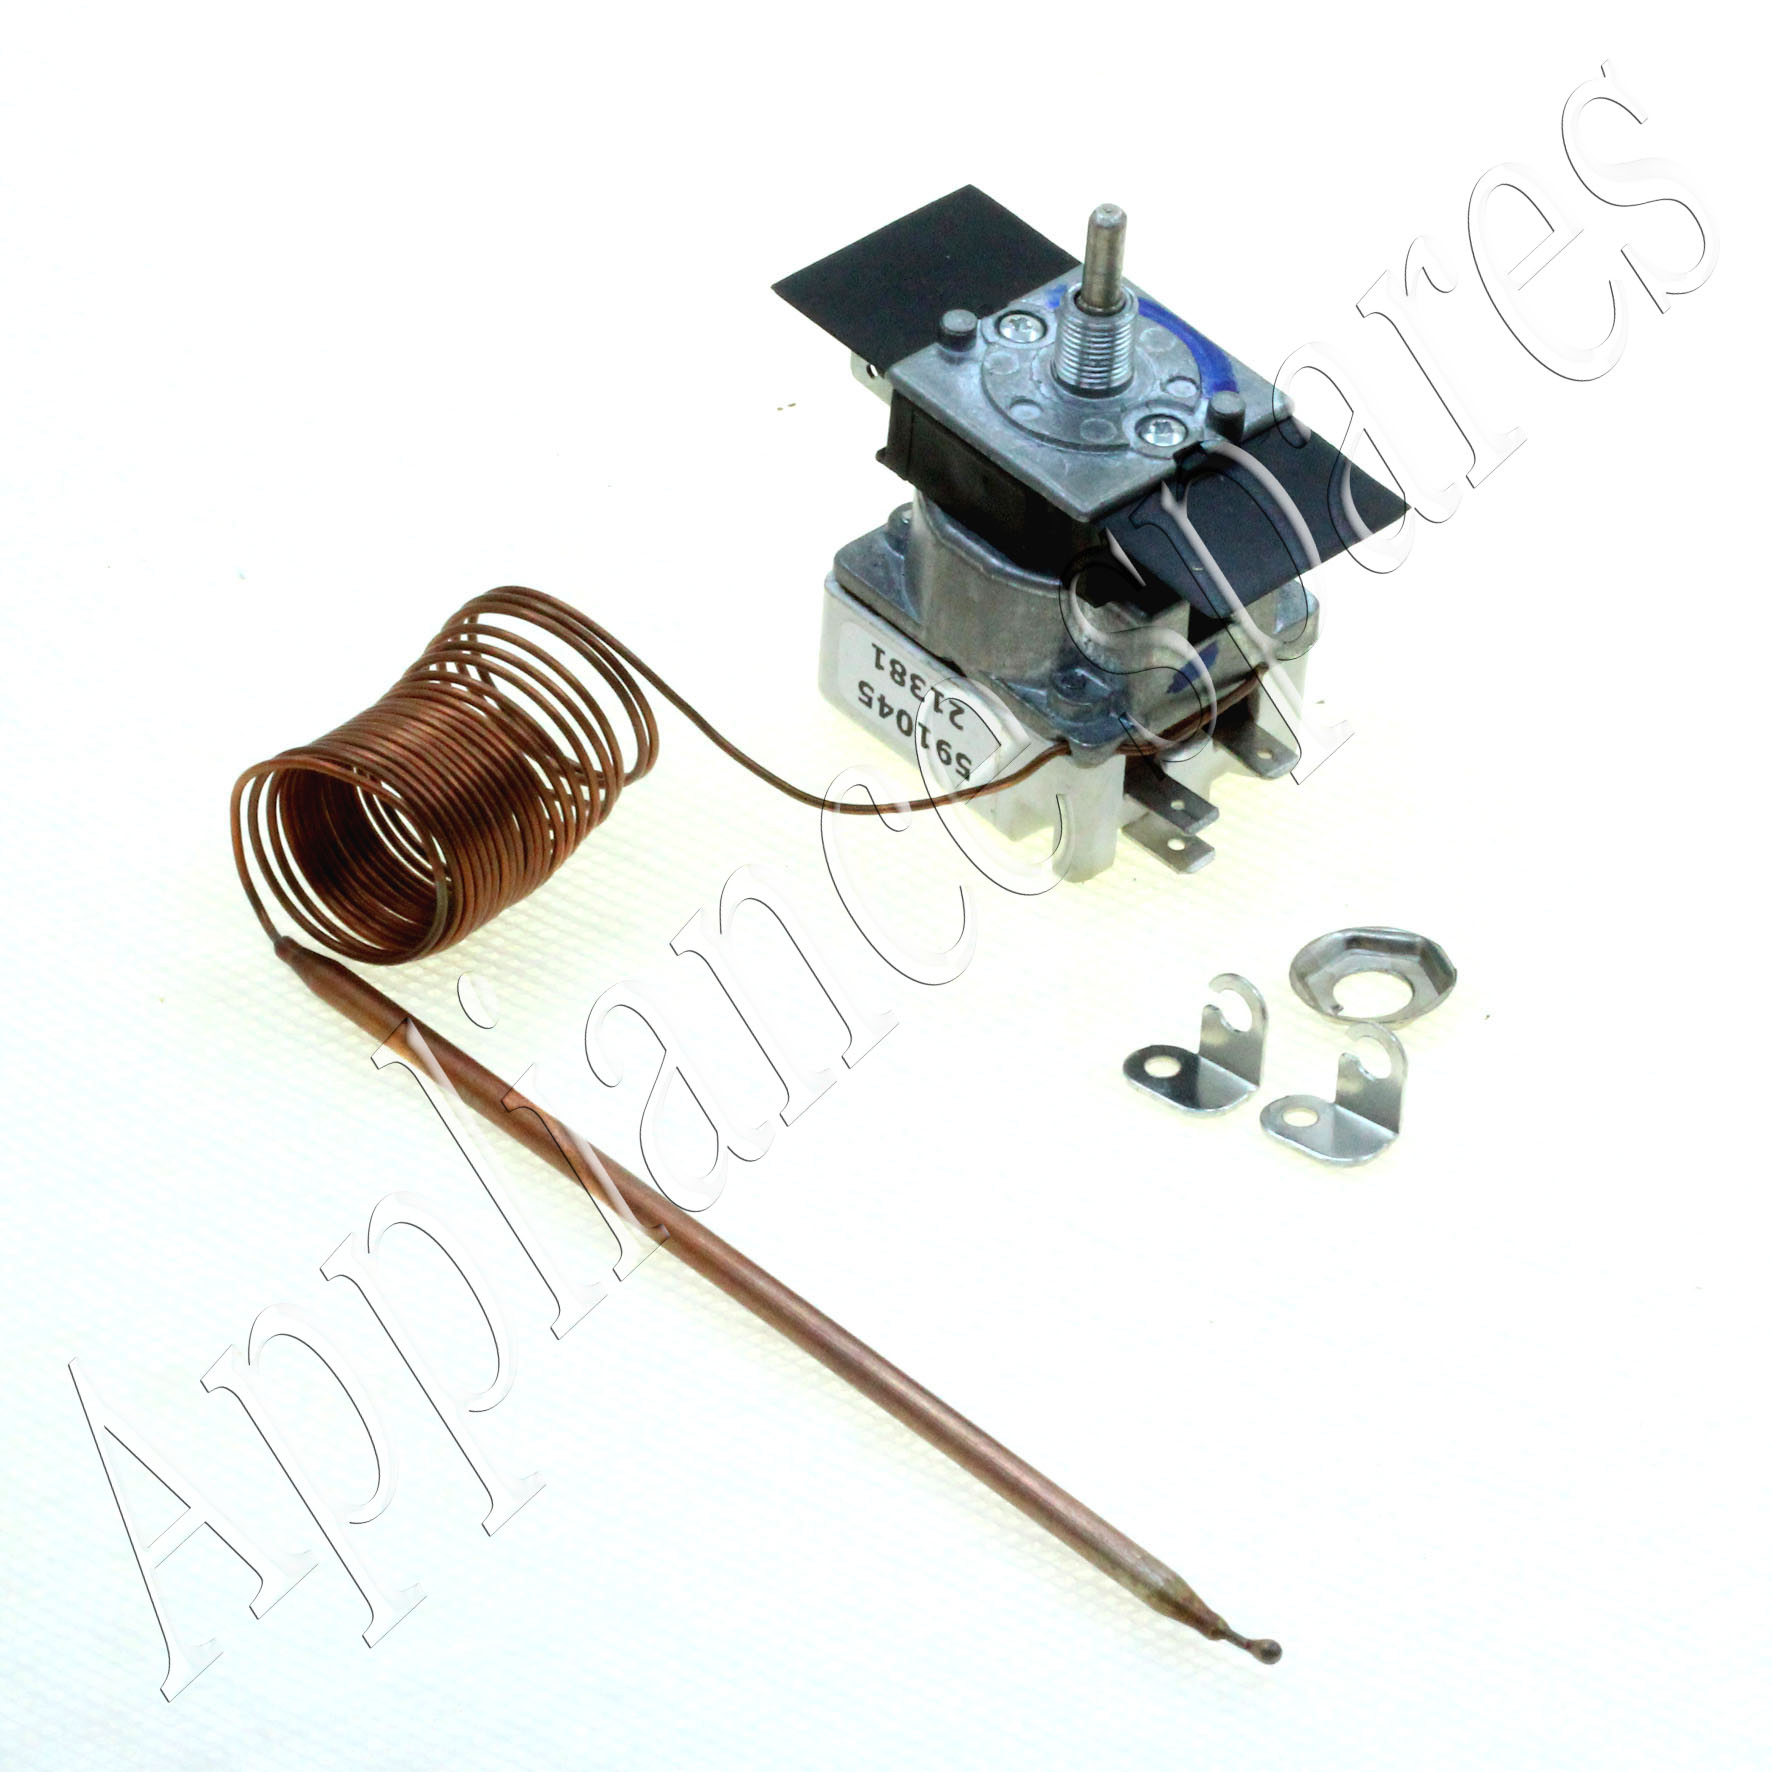 12453 thermostat 71th thin shaft 591045 lategan and van biljoens satchwell thermostat wiring diagram at bayanpartner.co